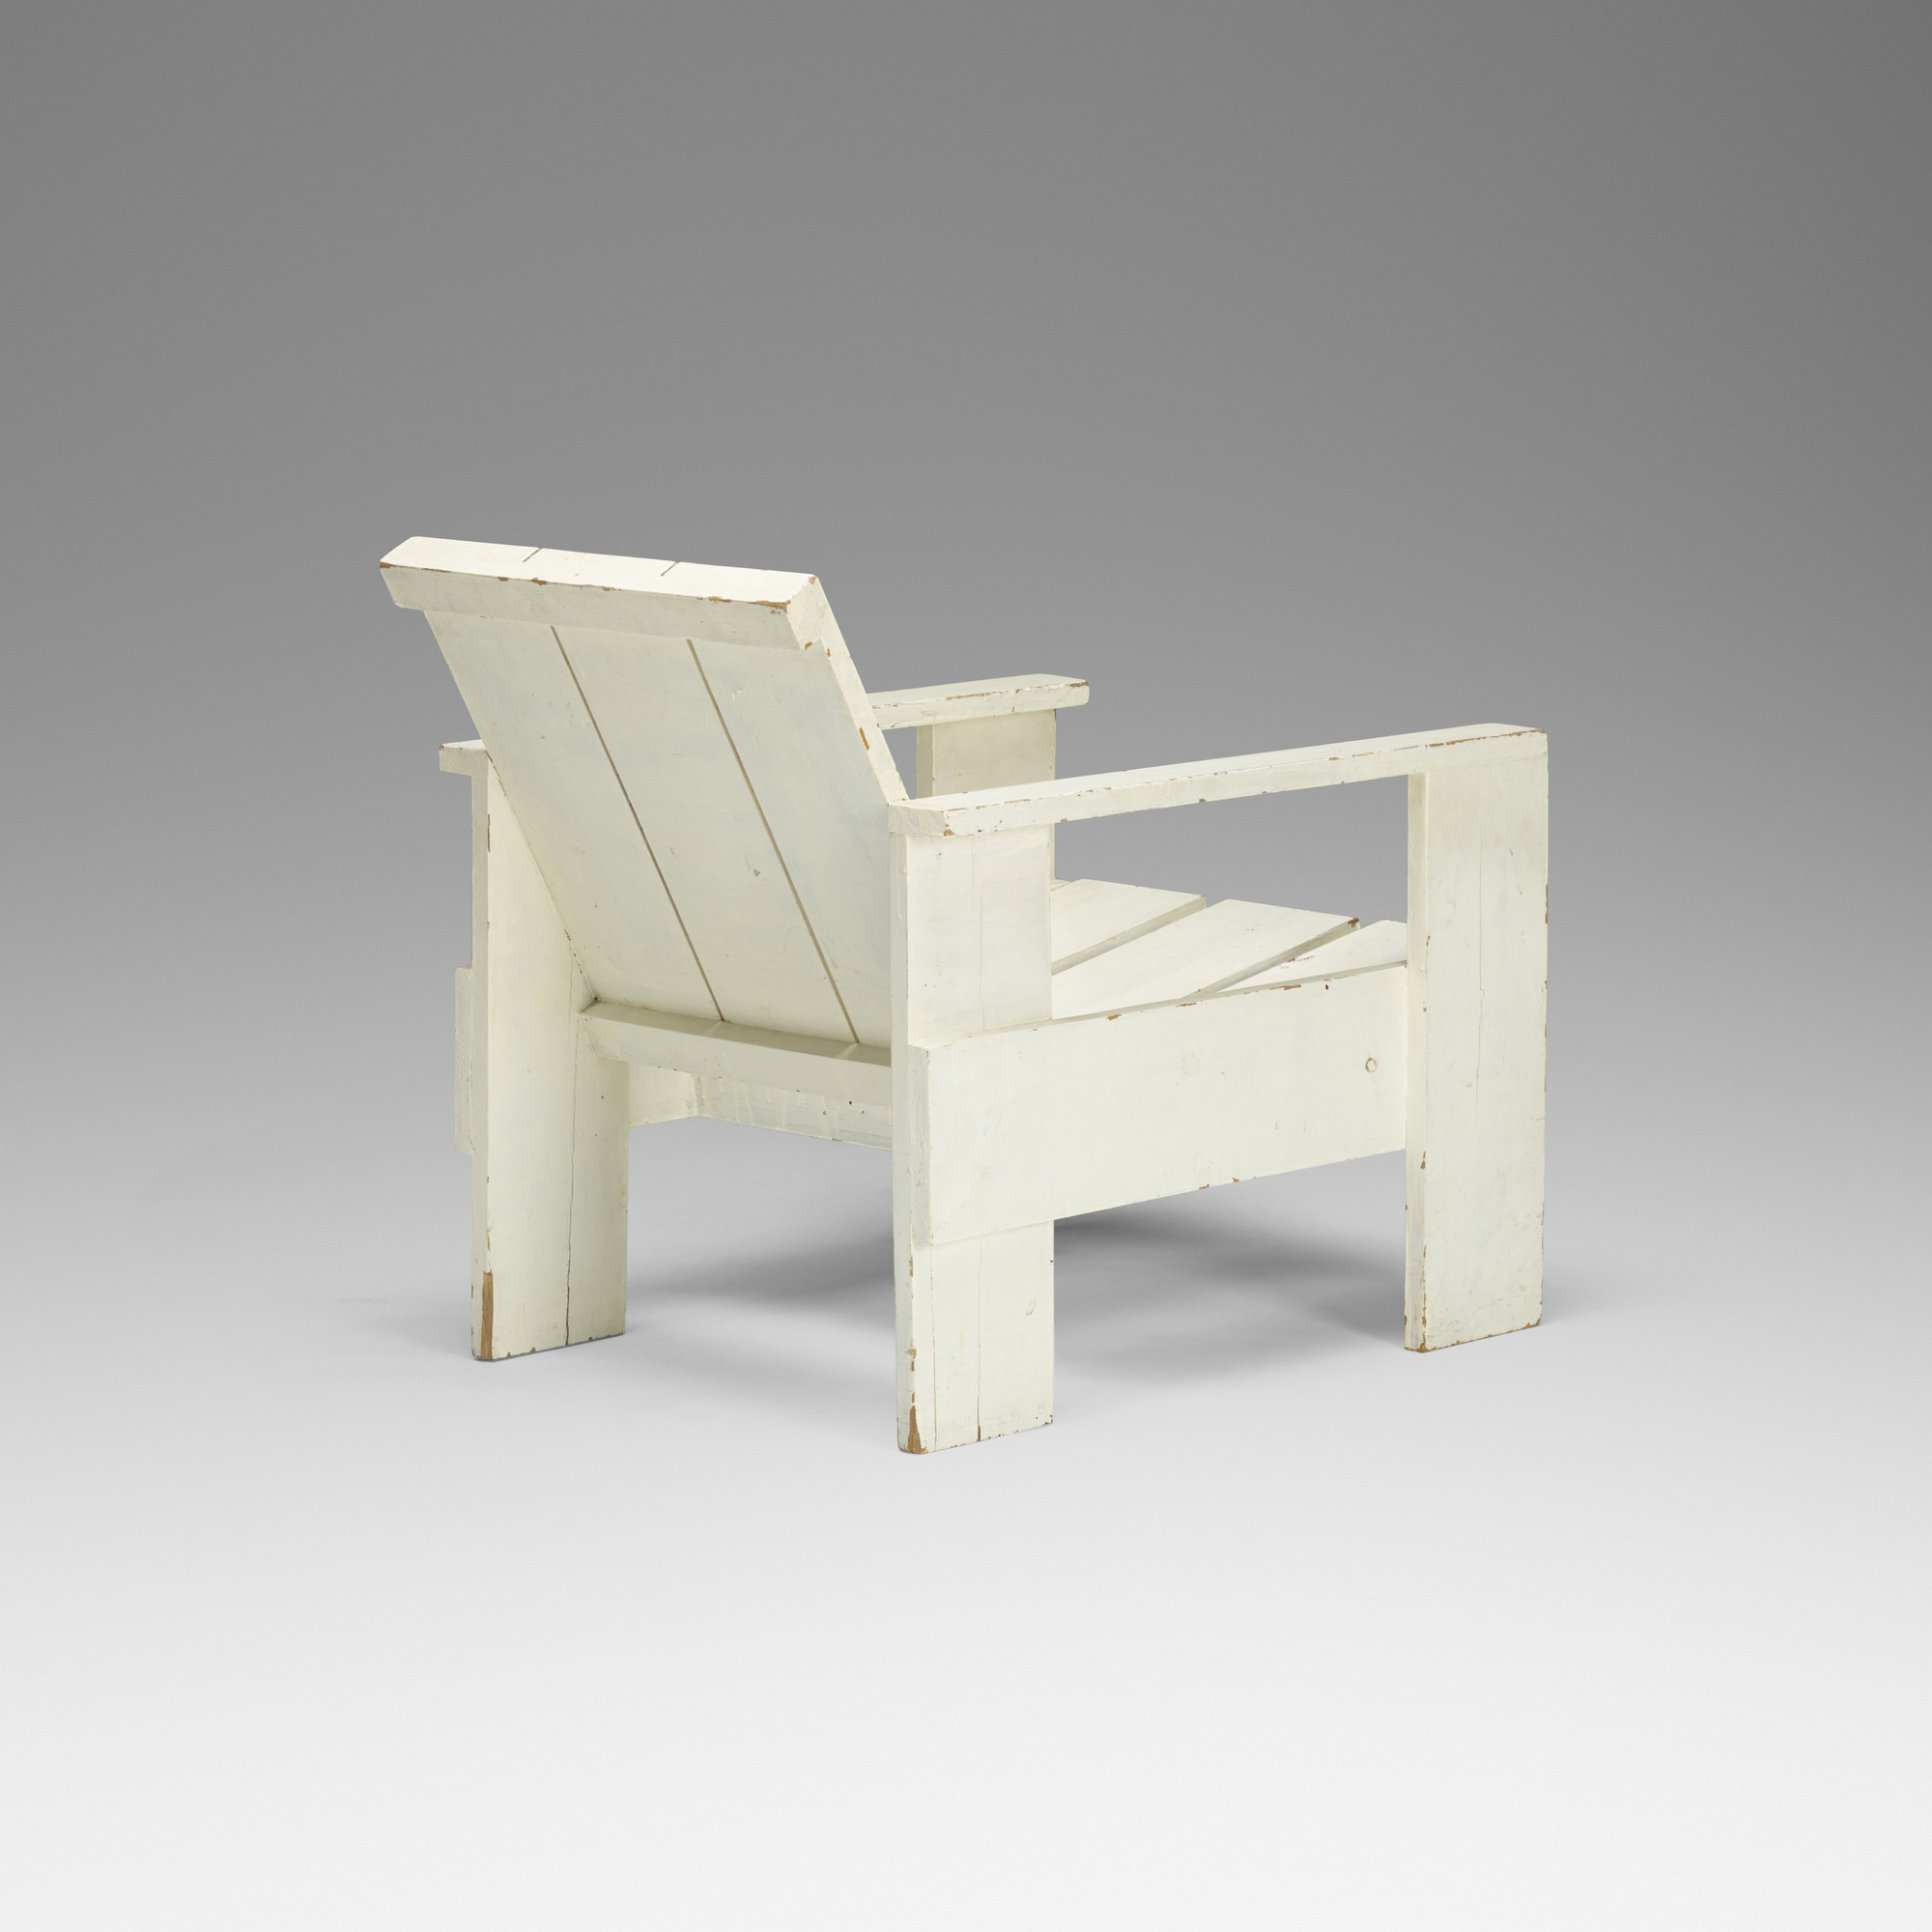 ... 237: Gerrit Rietveld / Early Crate Chair (2 Of 3)